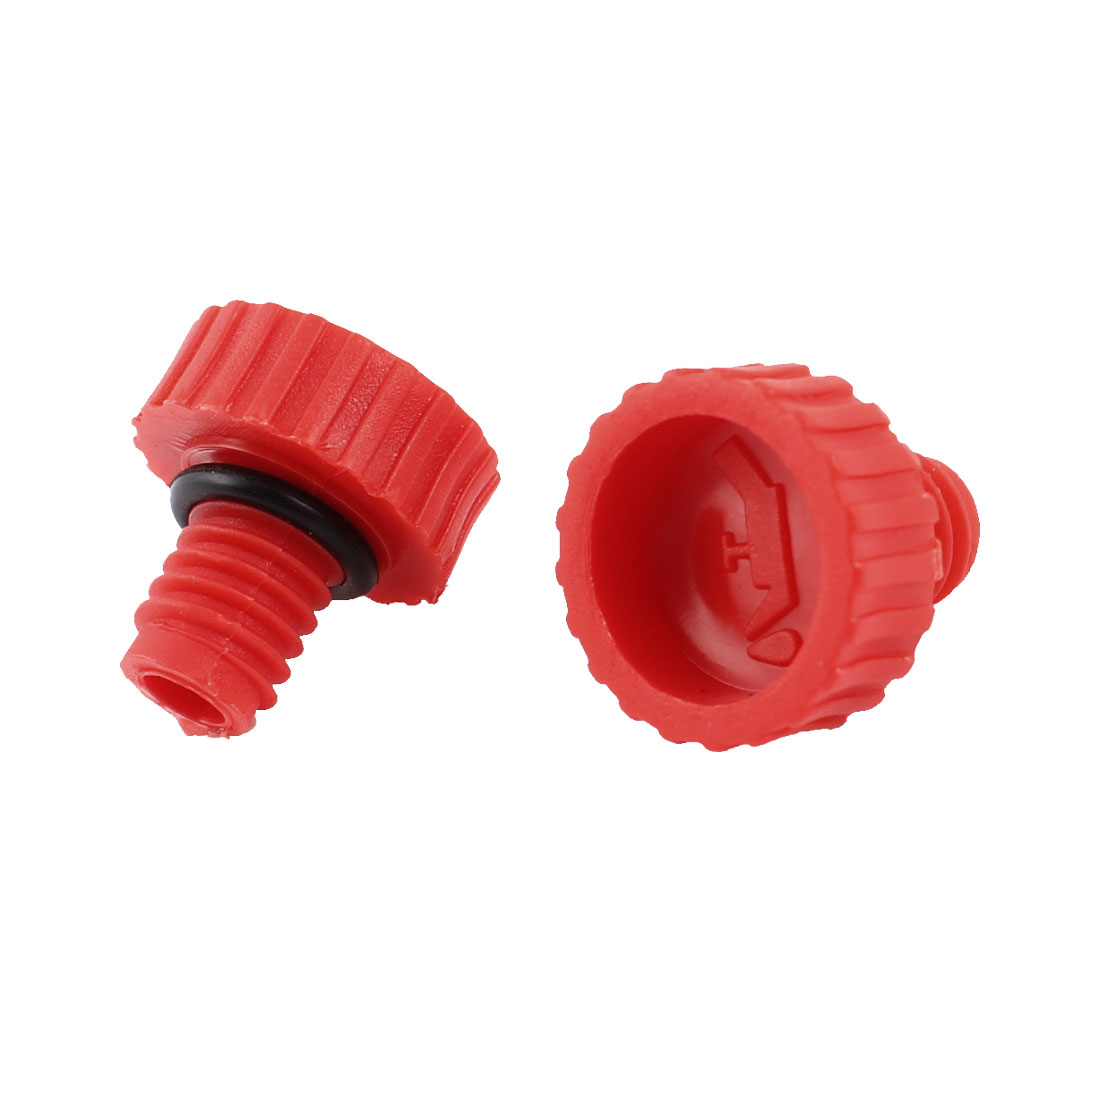 11mm Male Thread Nonslip Red Black Oil Cover for Air Compressor 2Pcs